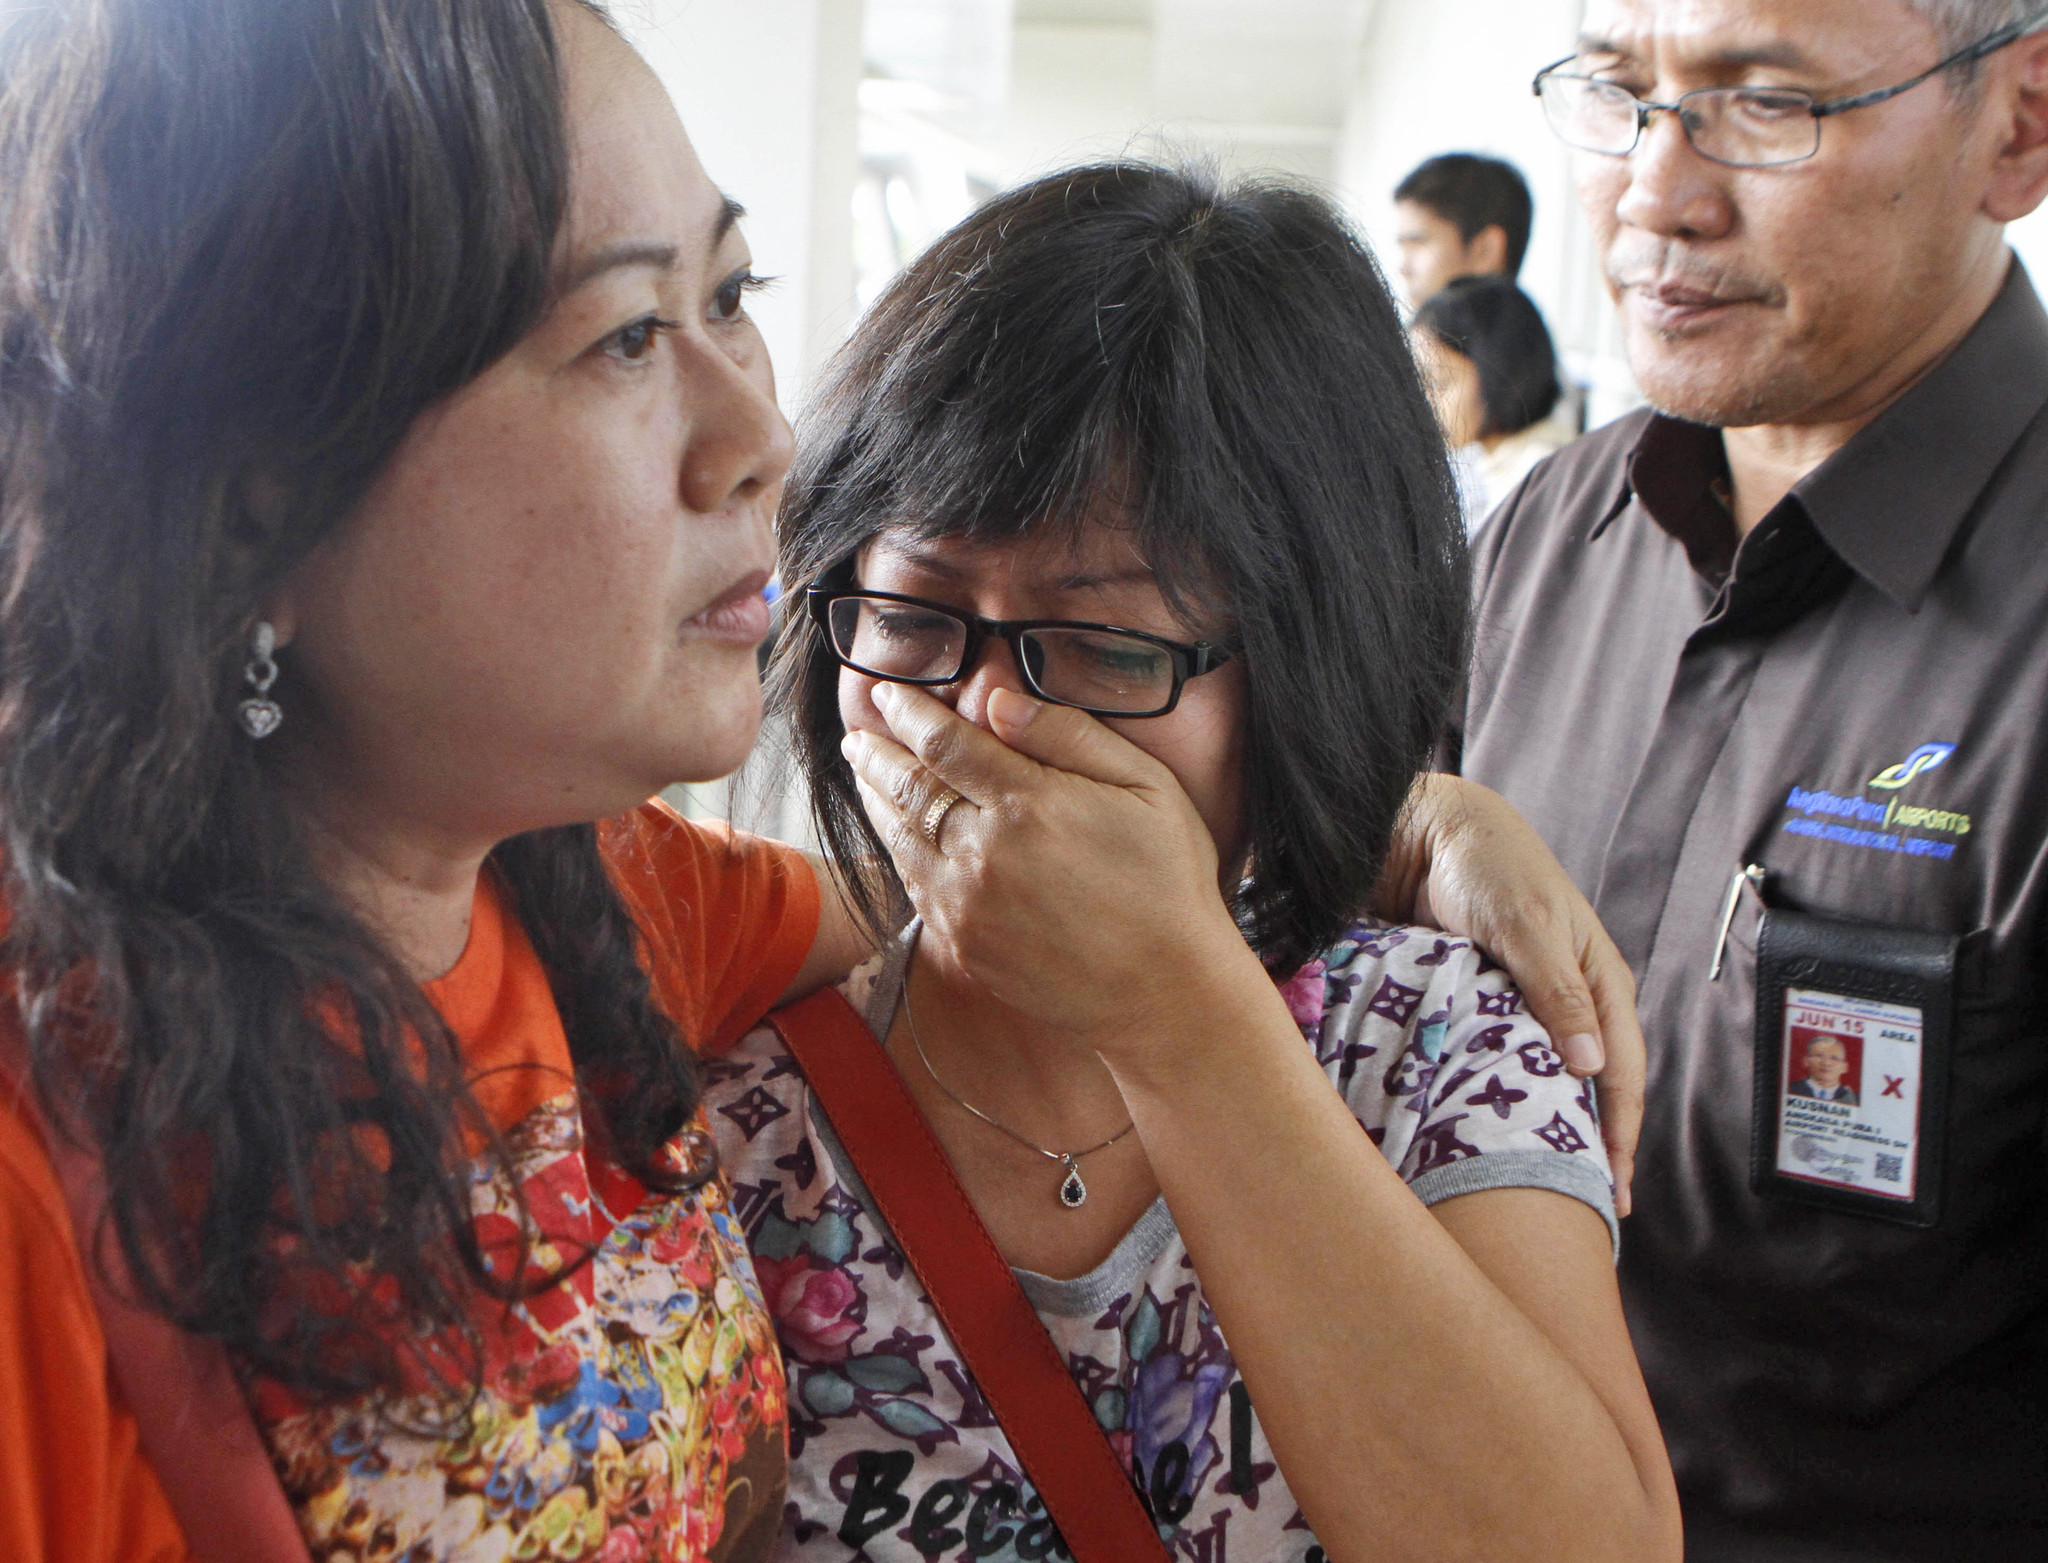 For first time, divers enter crashed AirAsia plane's fuselage